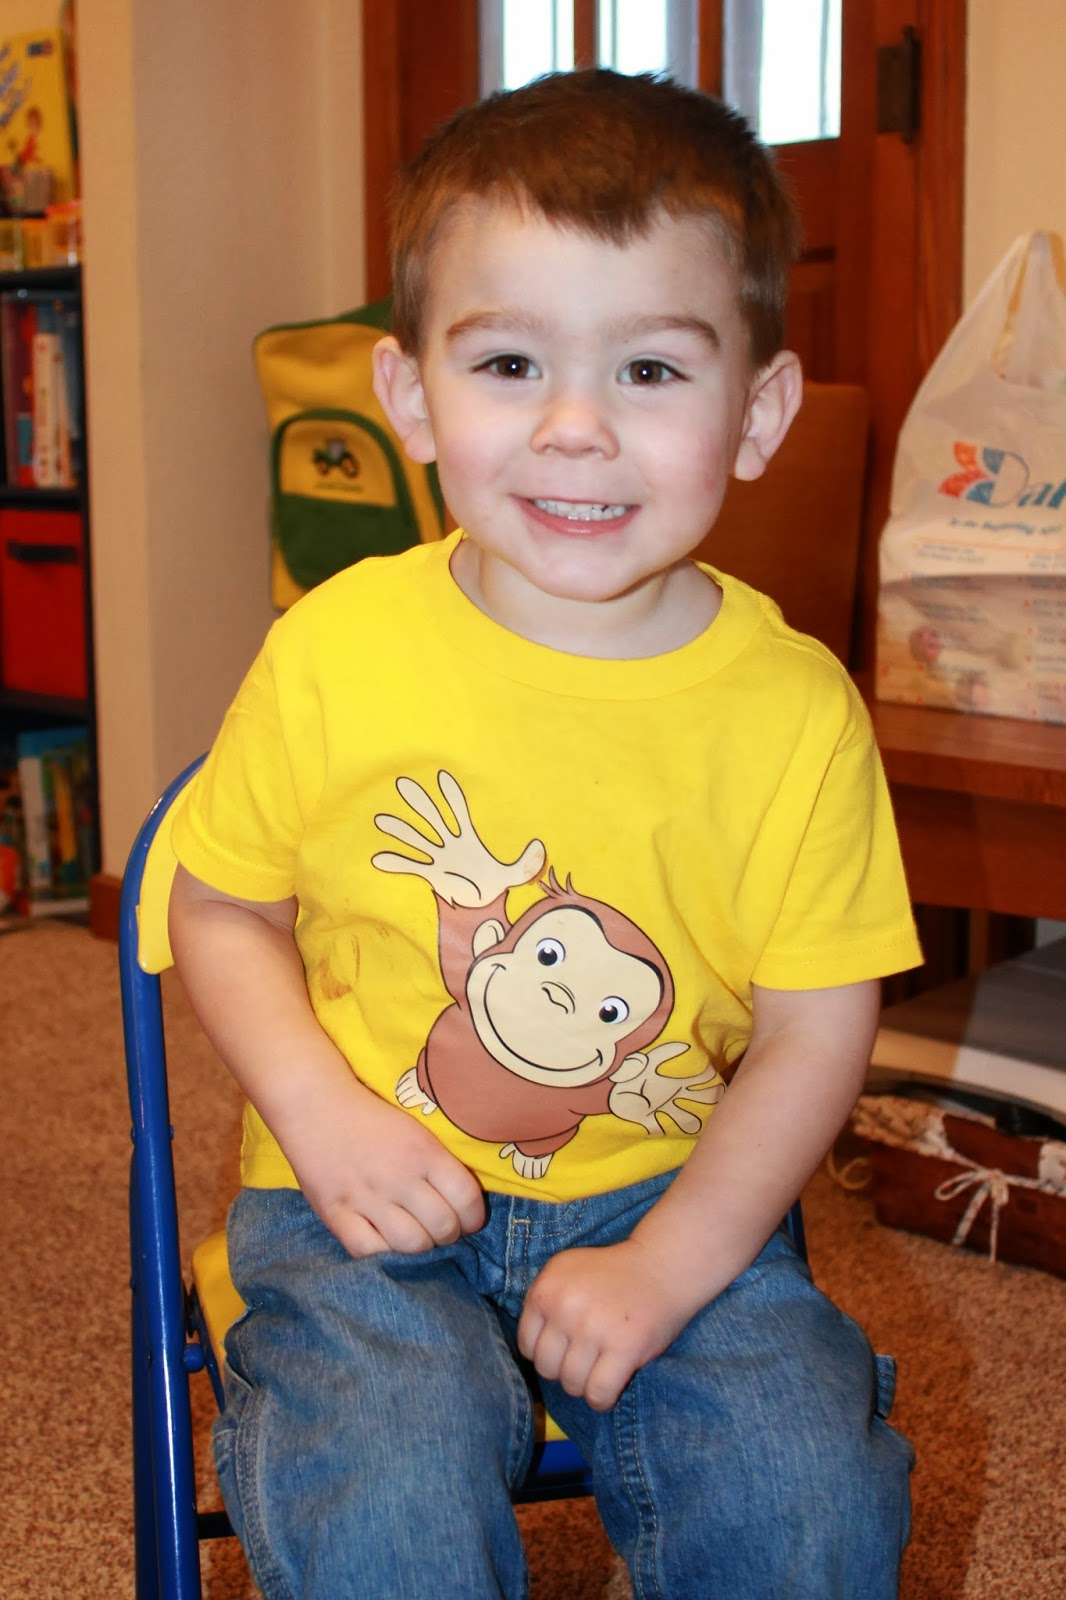 Excited Birthday Boy in his Curious George shirt